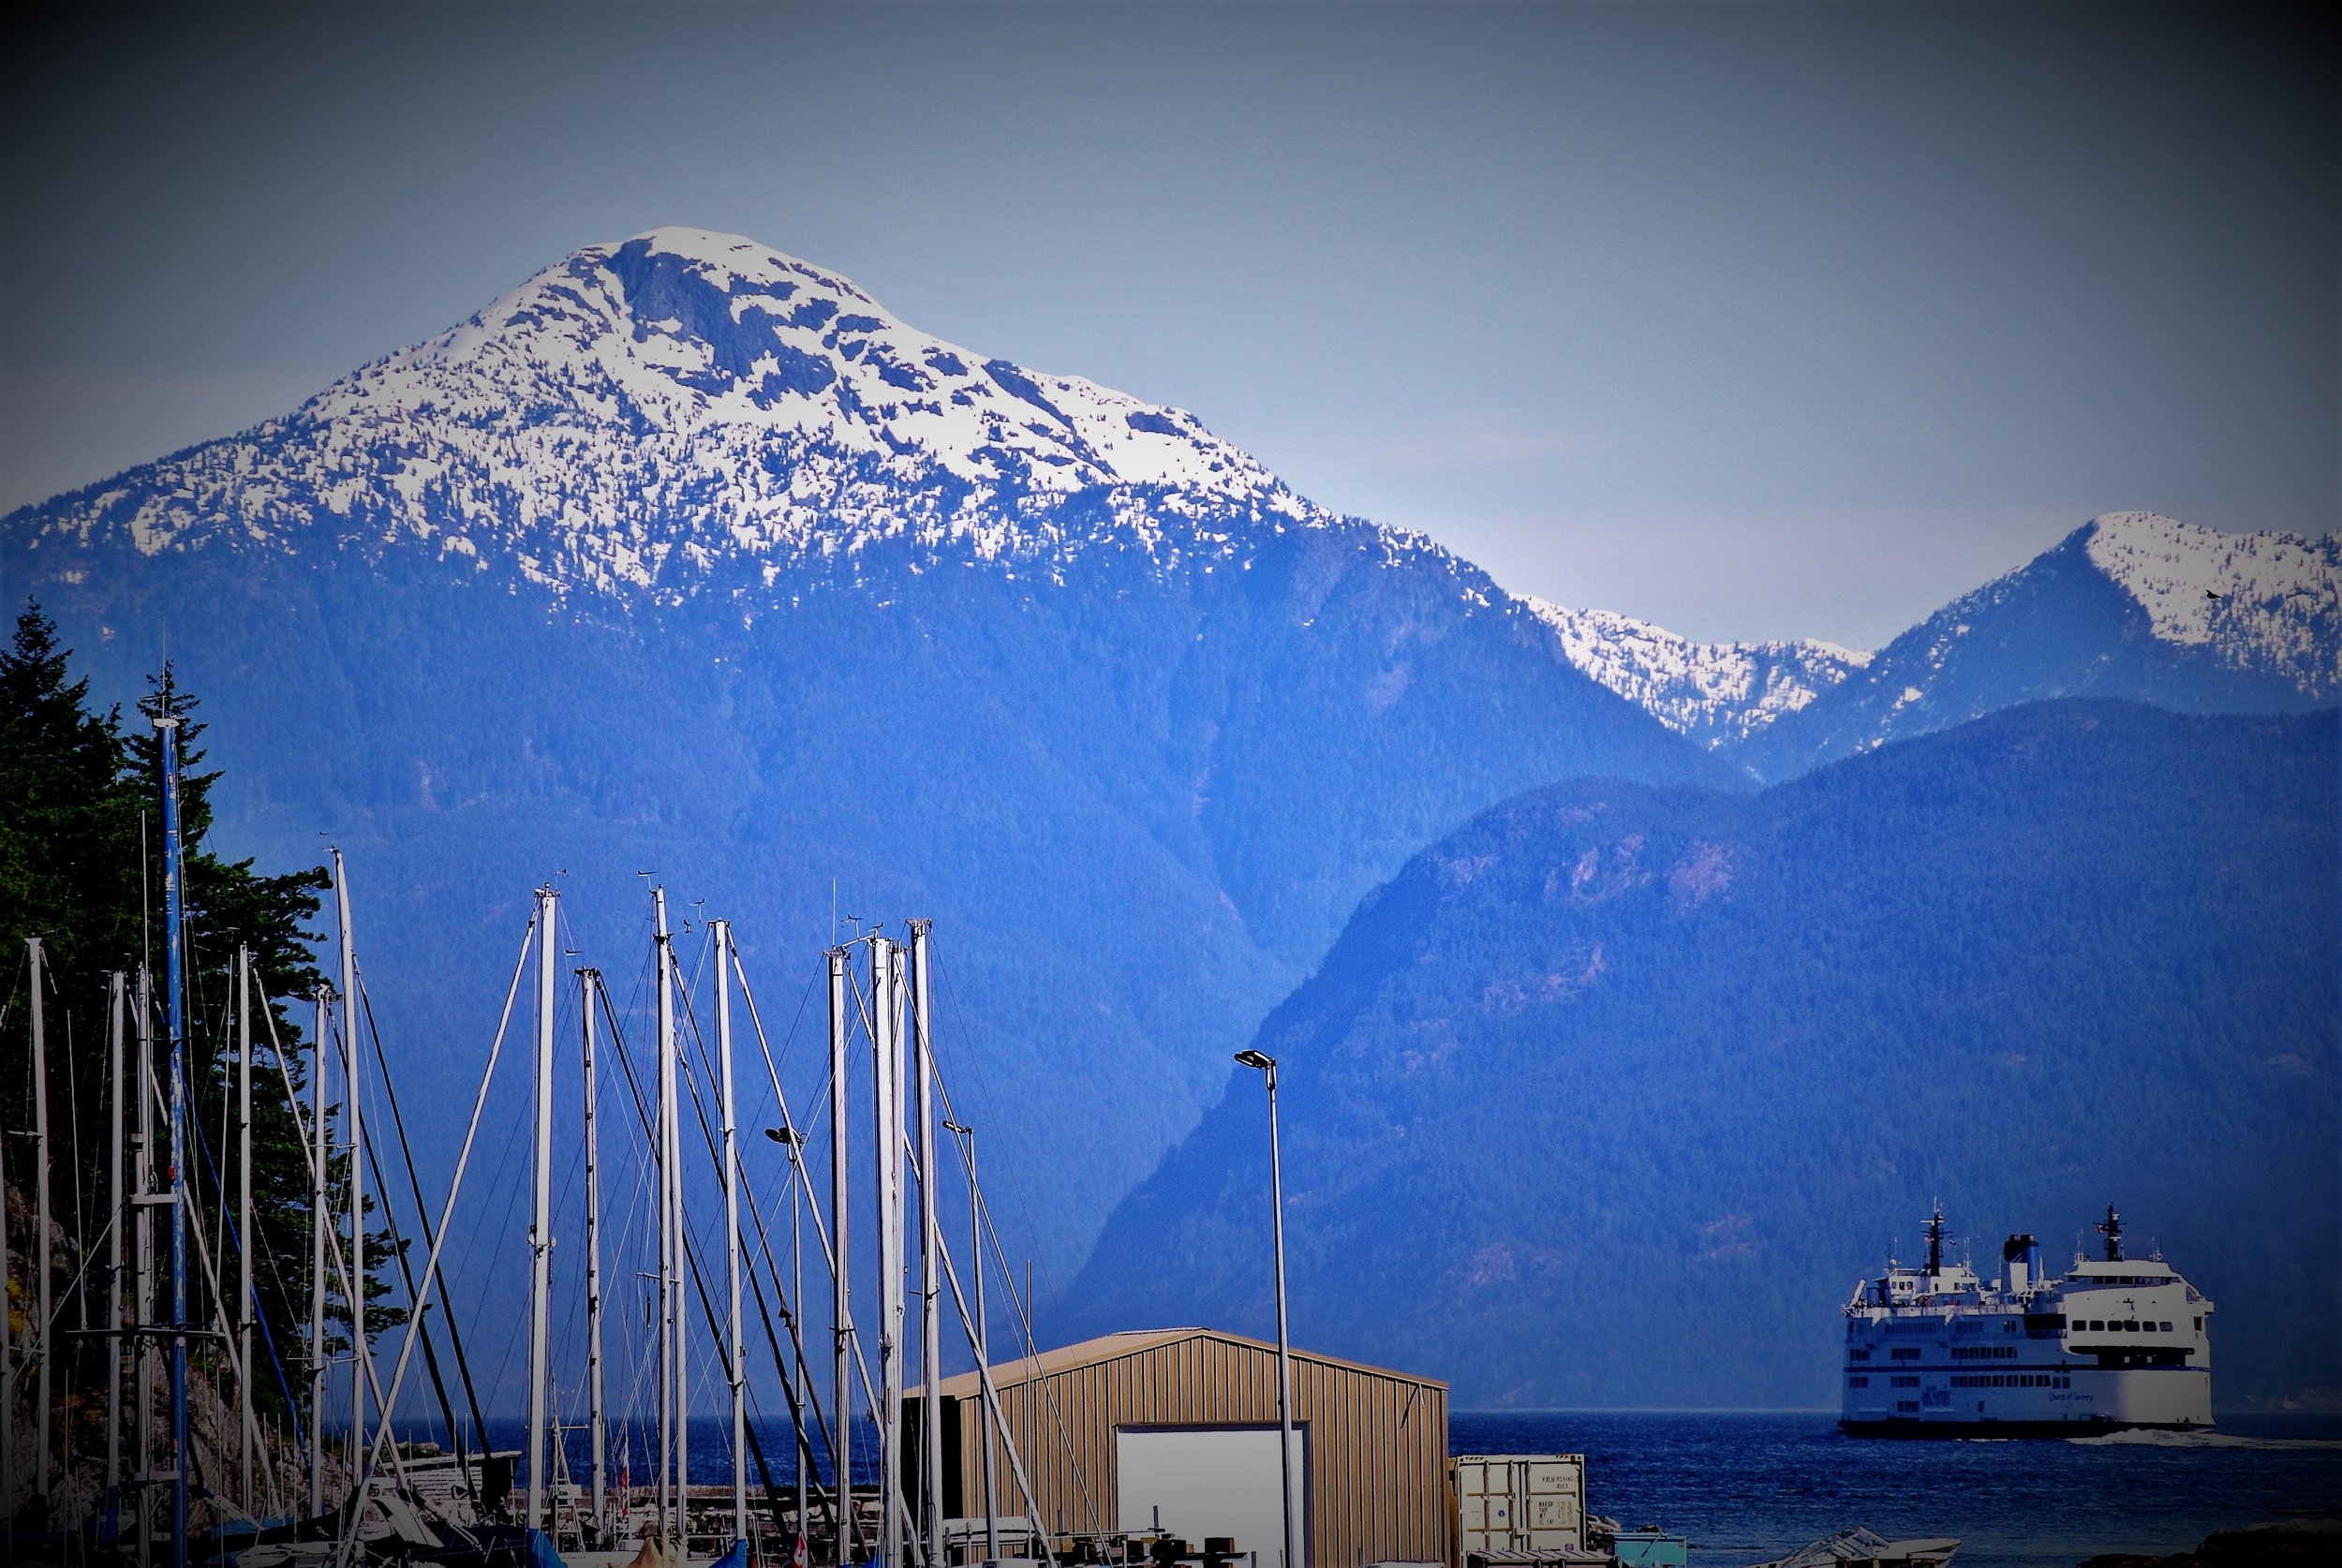 Horseshoe Bay, West Vancouver - view from the ferry terminal